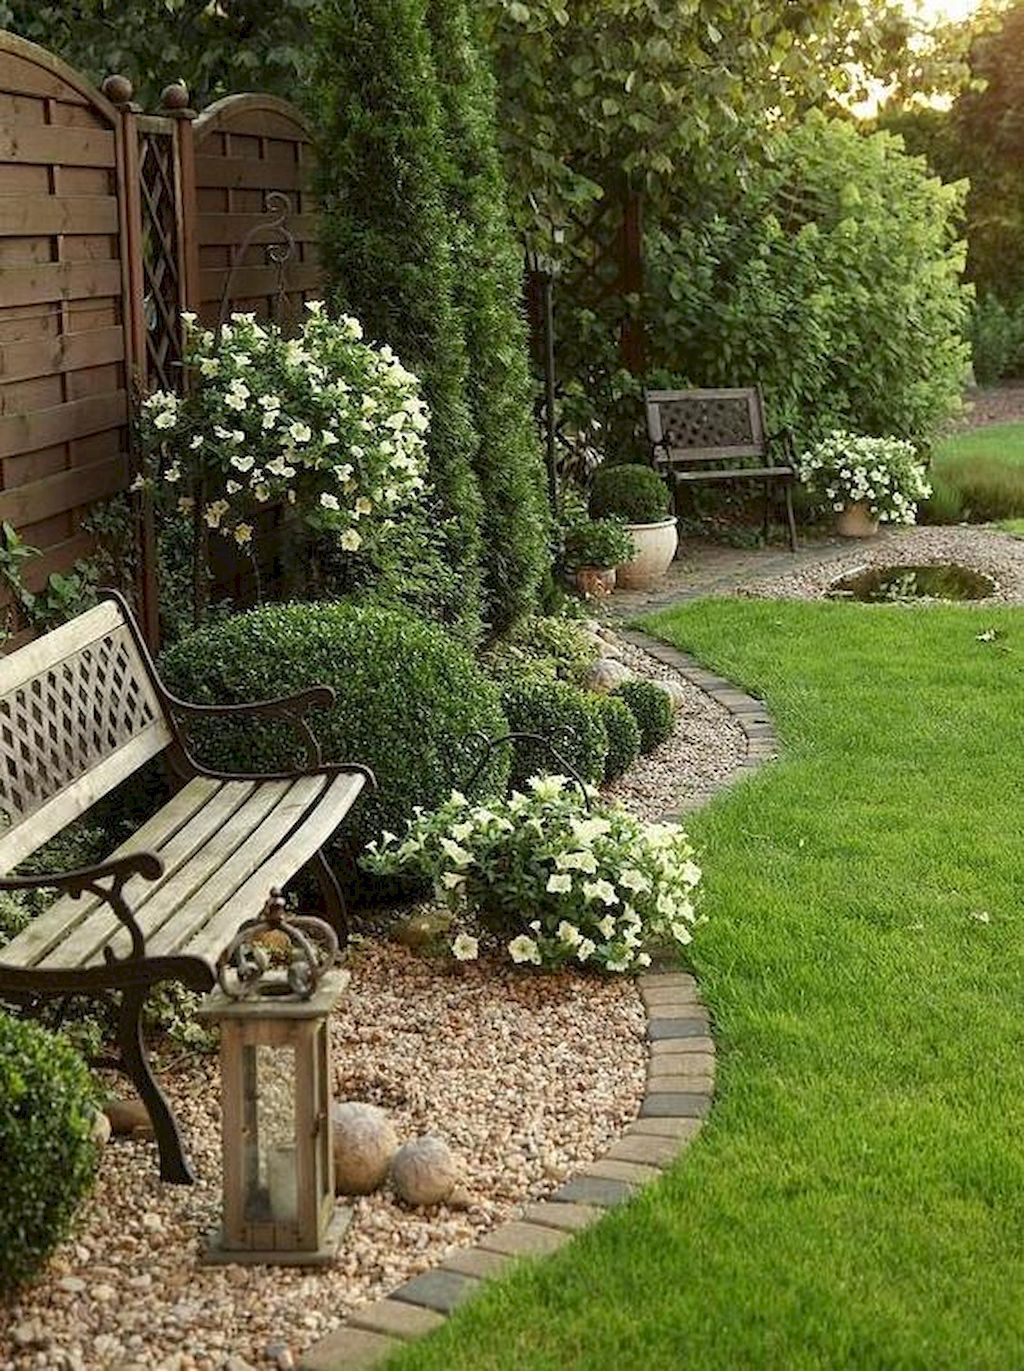 Pin By Kathryngomez247 On Modern Garden Pinterest Garden Garden